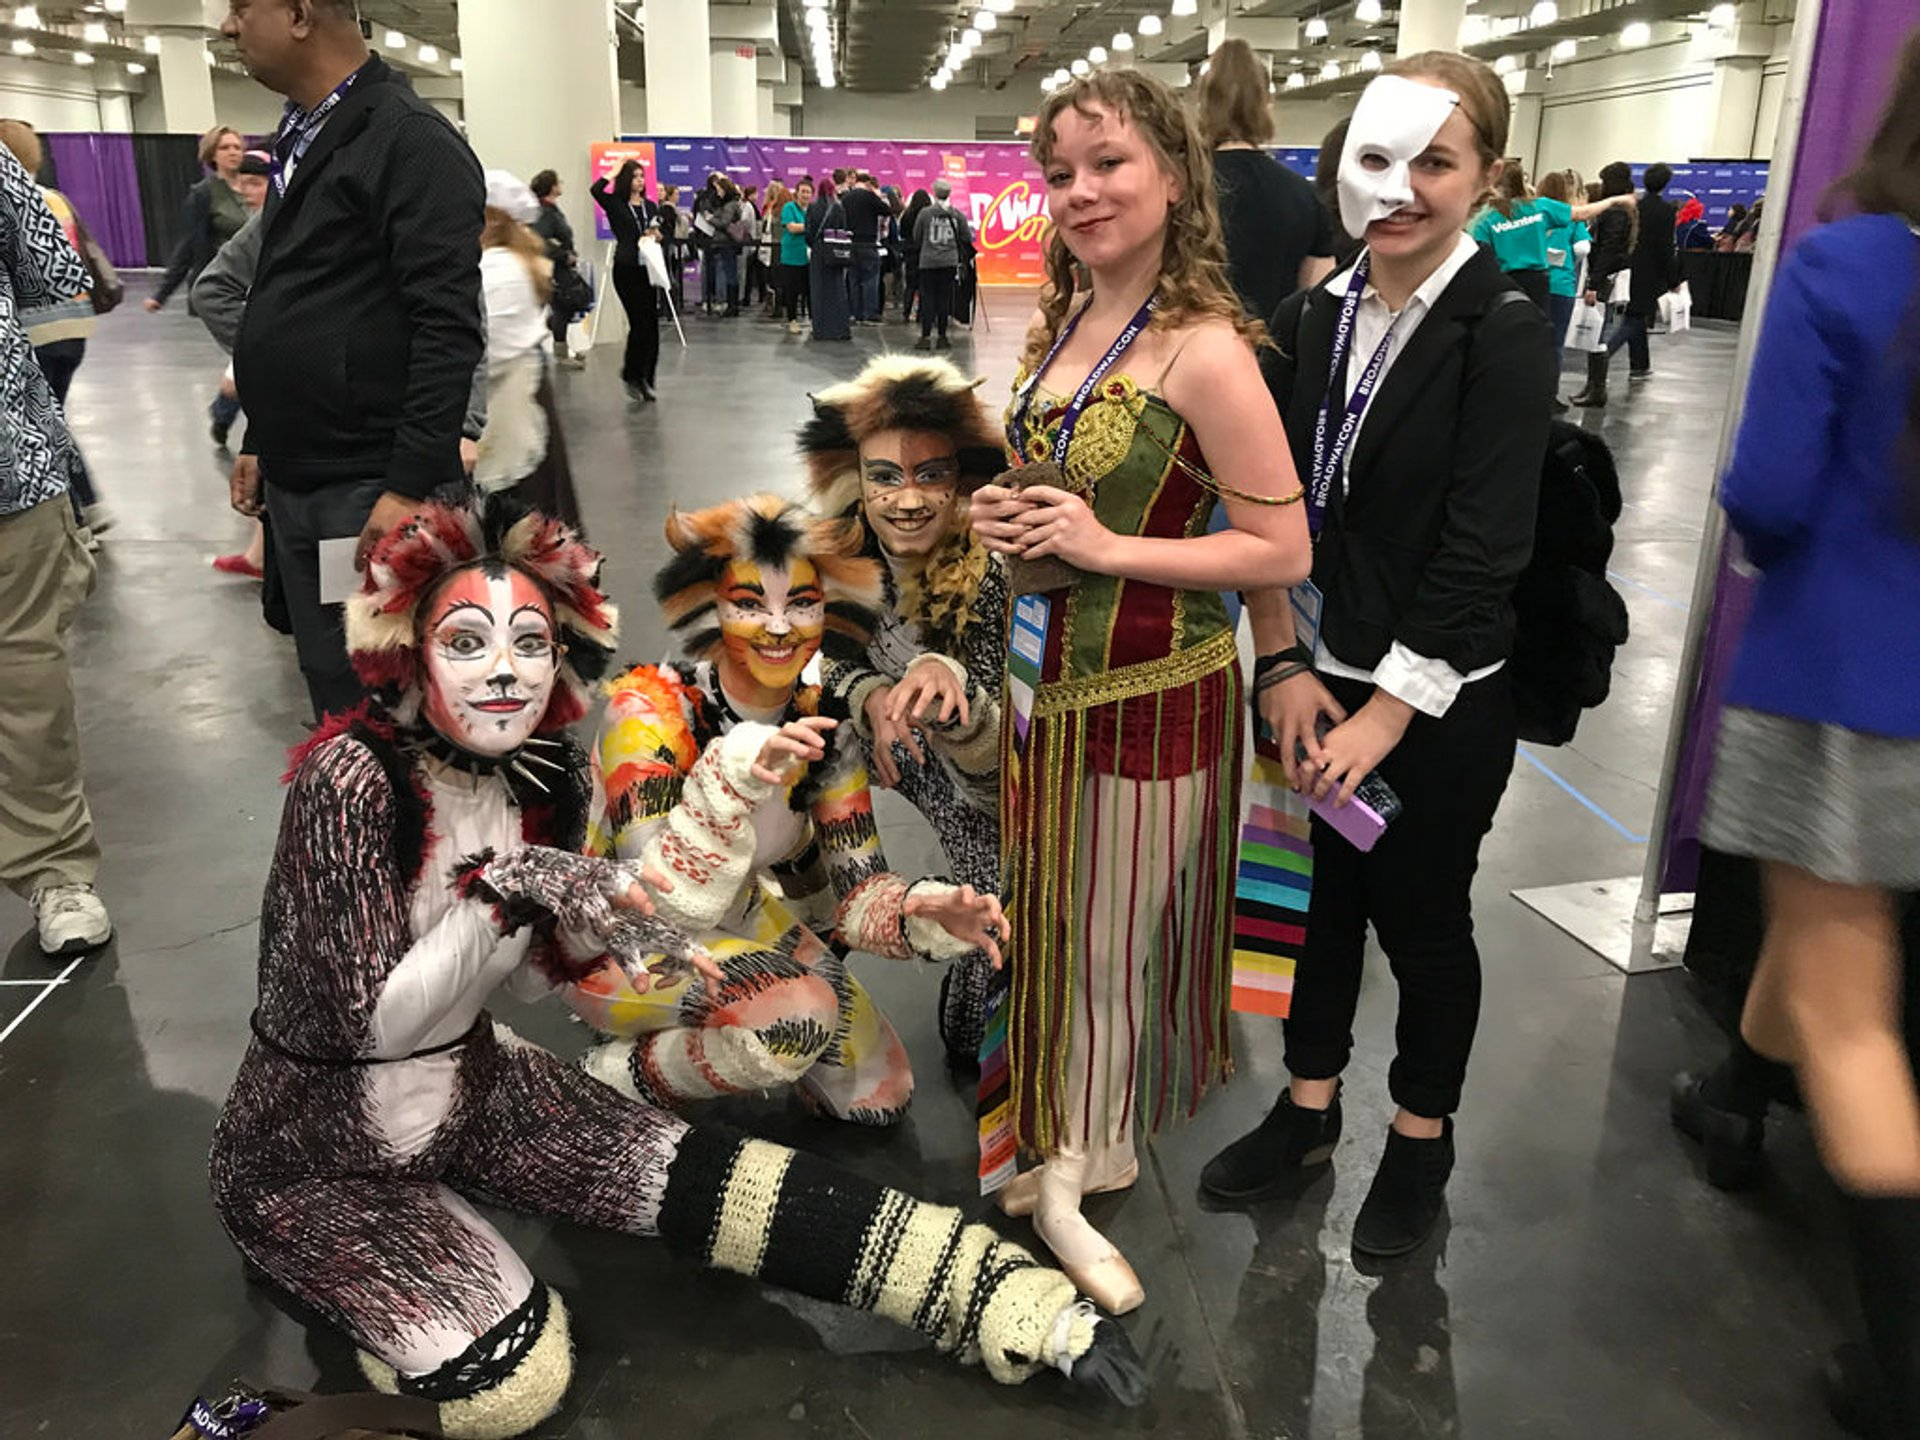 BroadwayCon in New York - Best Season 2020